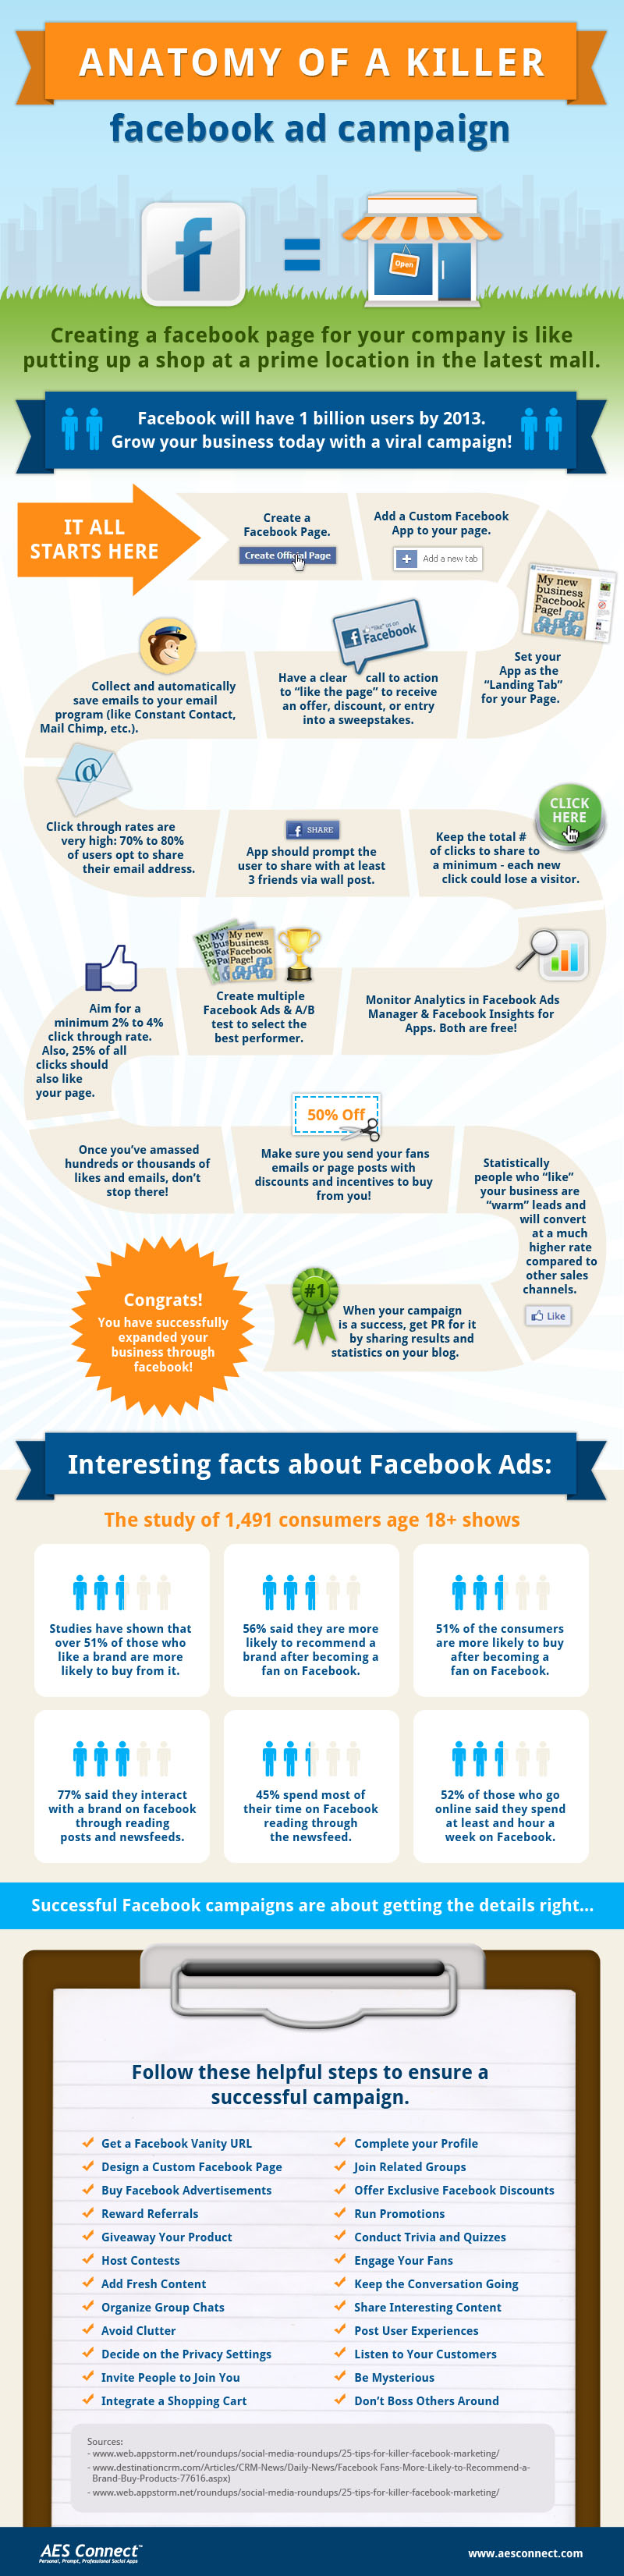 Facebook Advertising Statistics and Facts